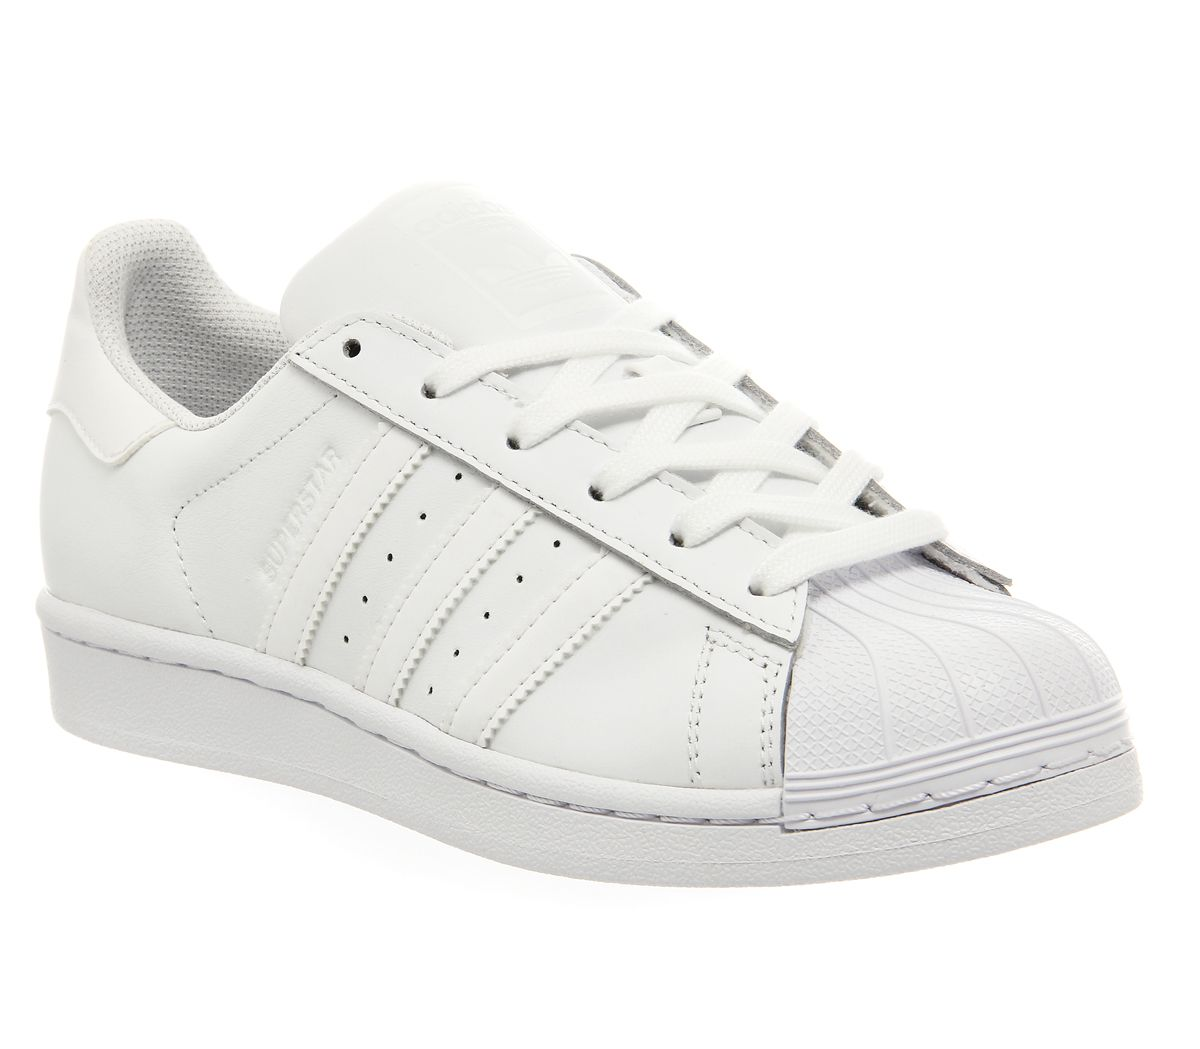 b86fc67bfb7 adidas Superstar 1 White Mono Foundation - Unisex Sports